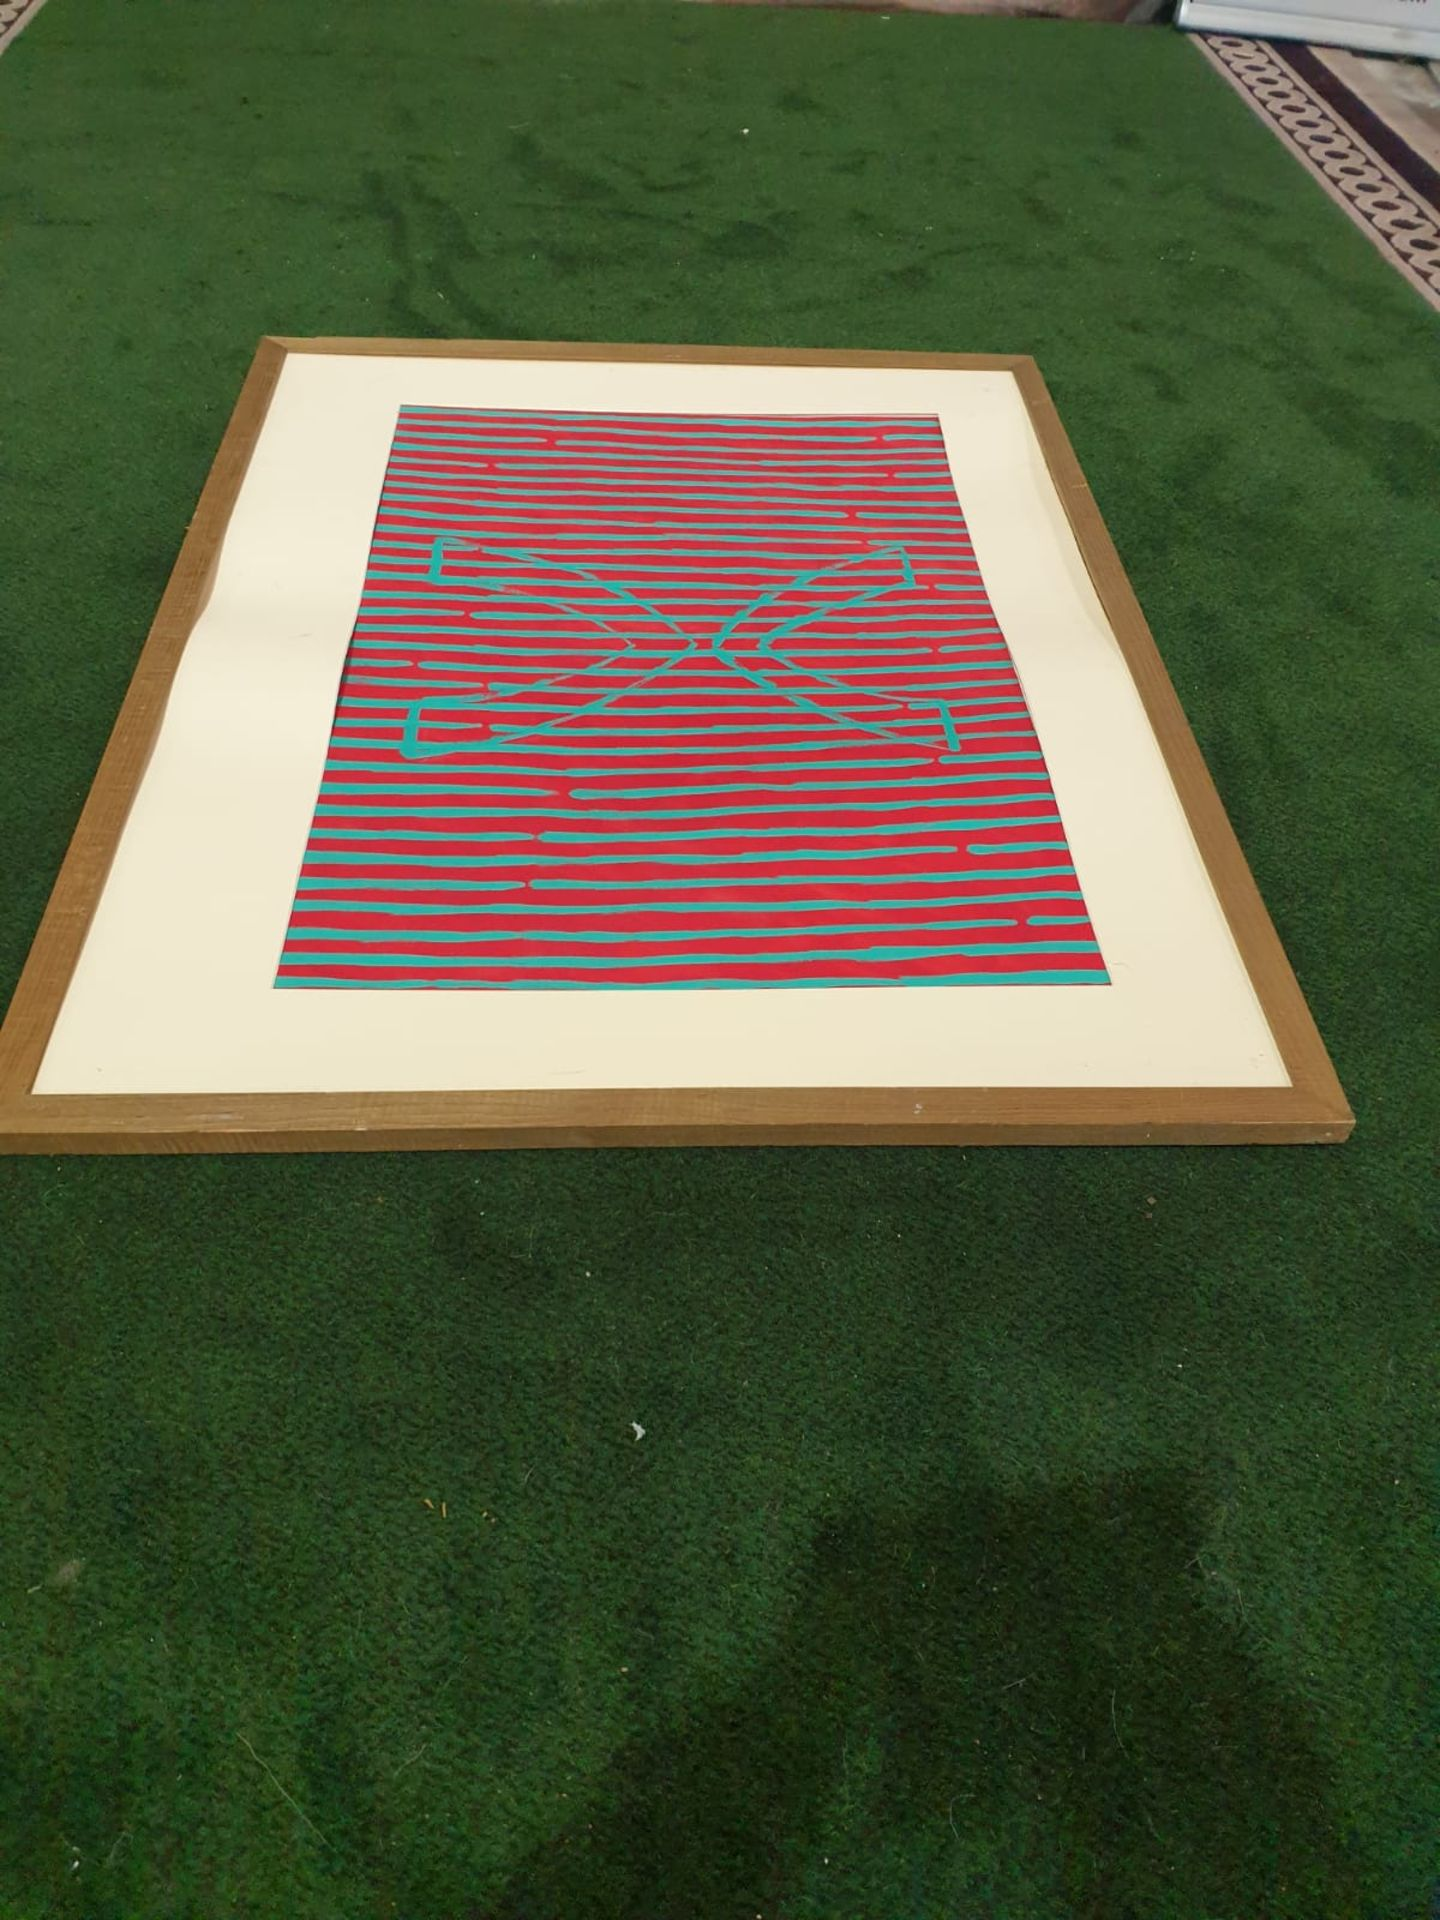 Framed without glass Modern art Red/Blue stripes. Vee and inverted Vee. Whiteford 1991 122 x 96cm - Image 2 of 3